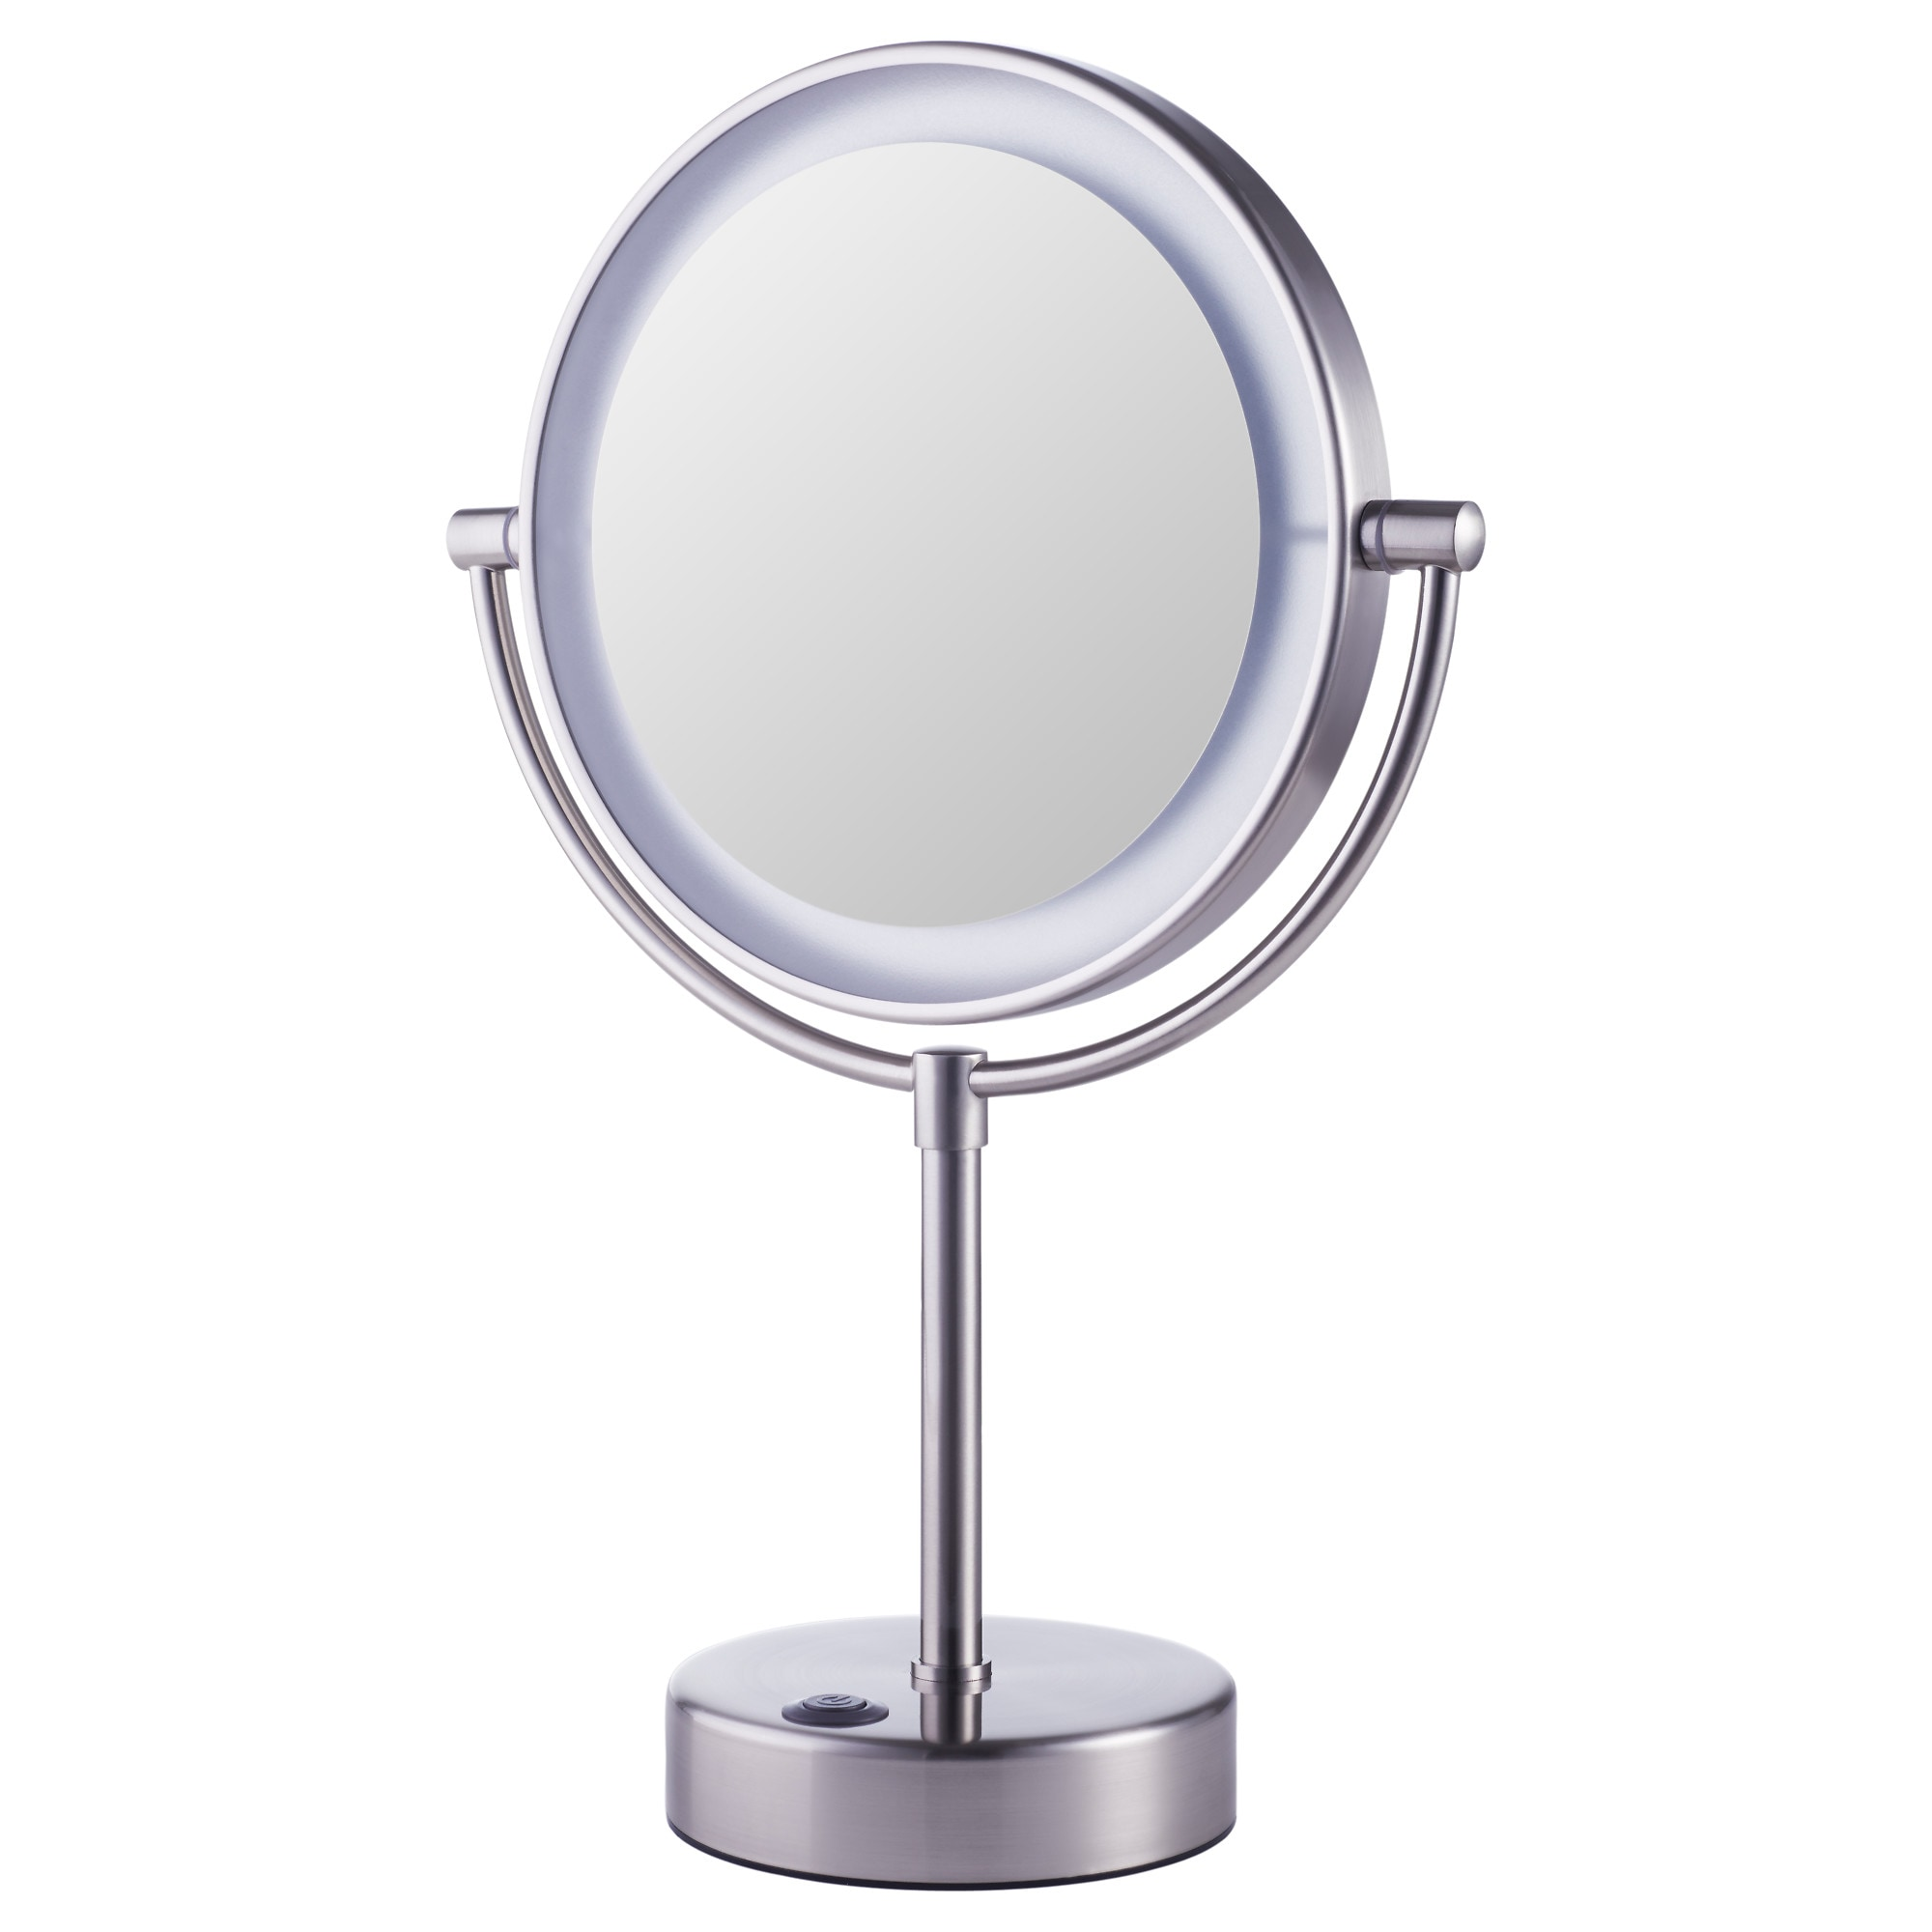 Dressing table mirrors ikea - Kaitum Mirror With Built In Lighting Battery Operated Height 14 5 8